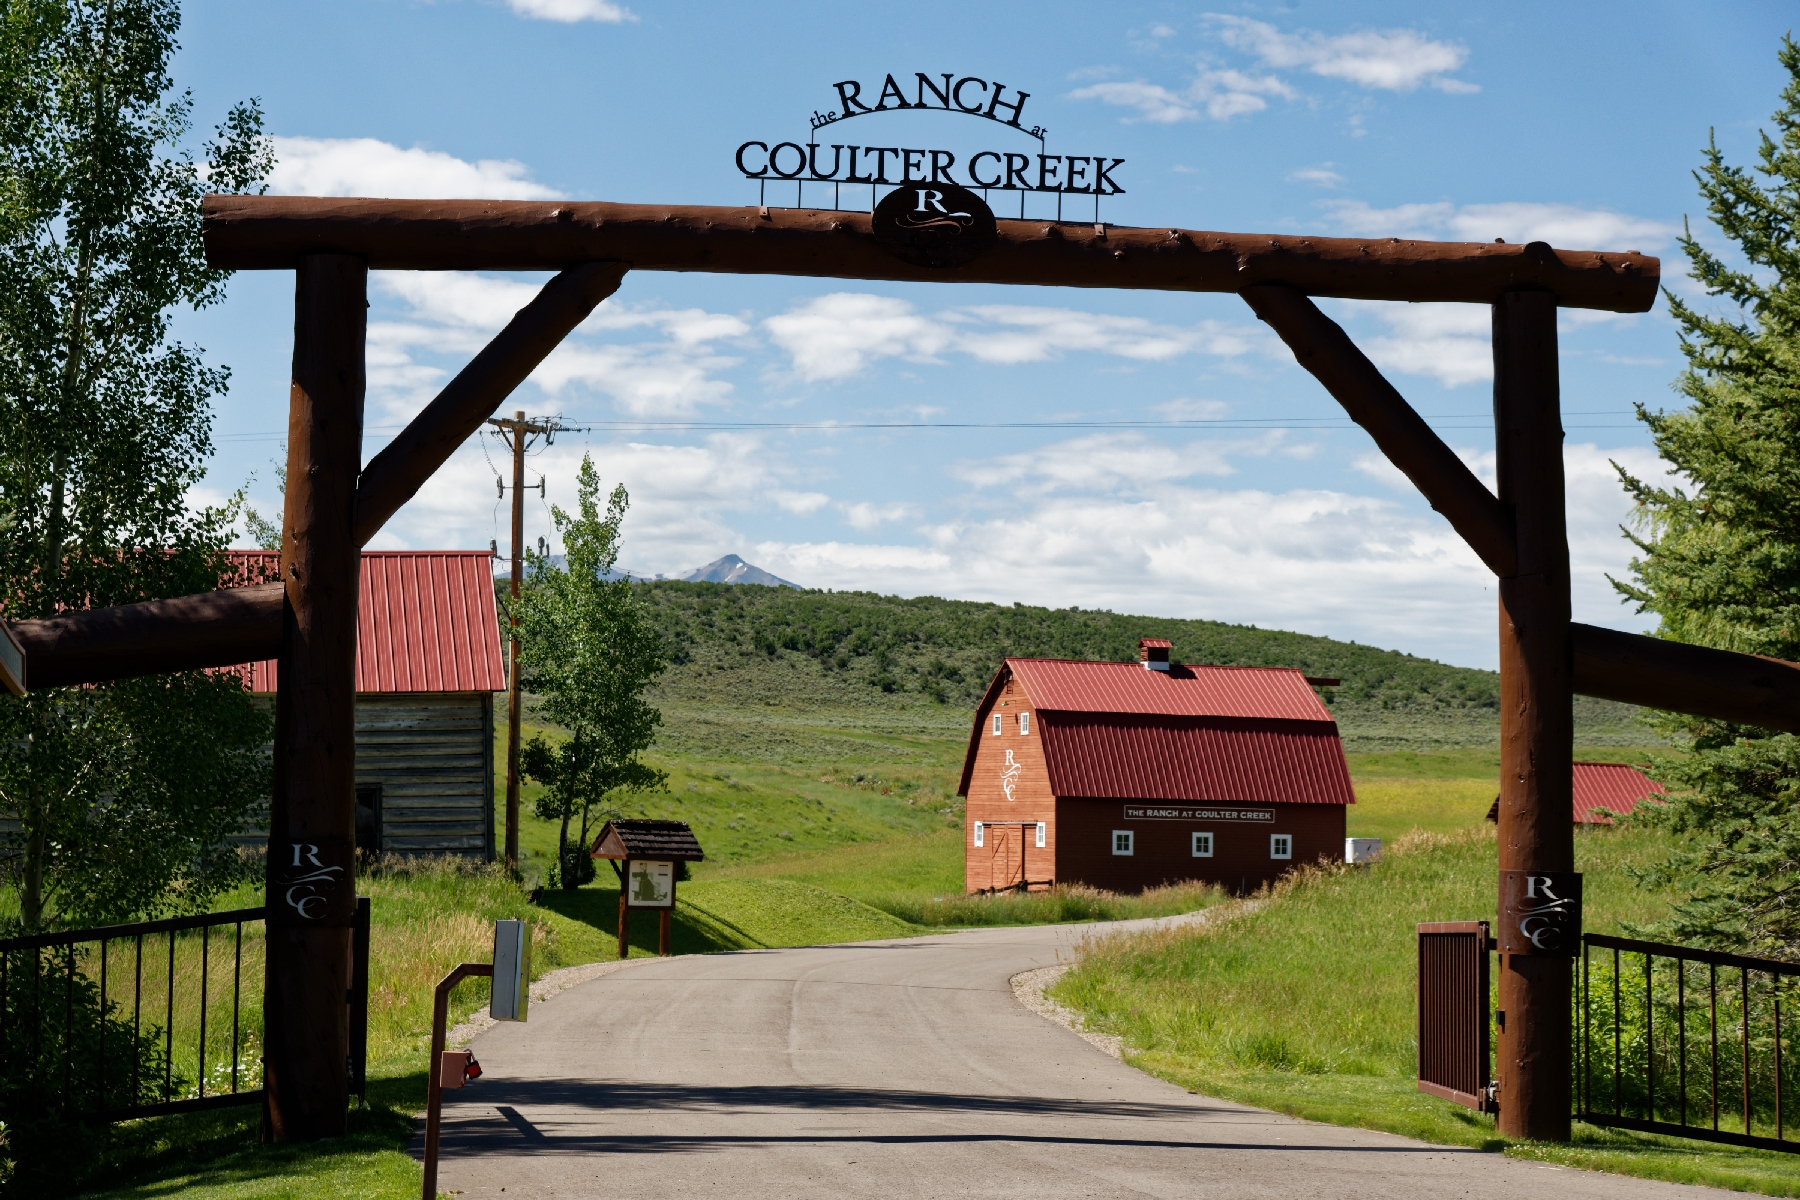 Land for Sale at Ranch at Coulter Creek TBD Saddle Drive Carbondale, Colorado, 81623 United States